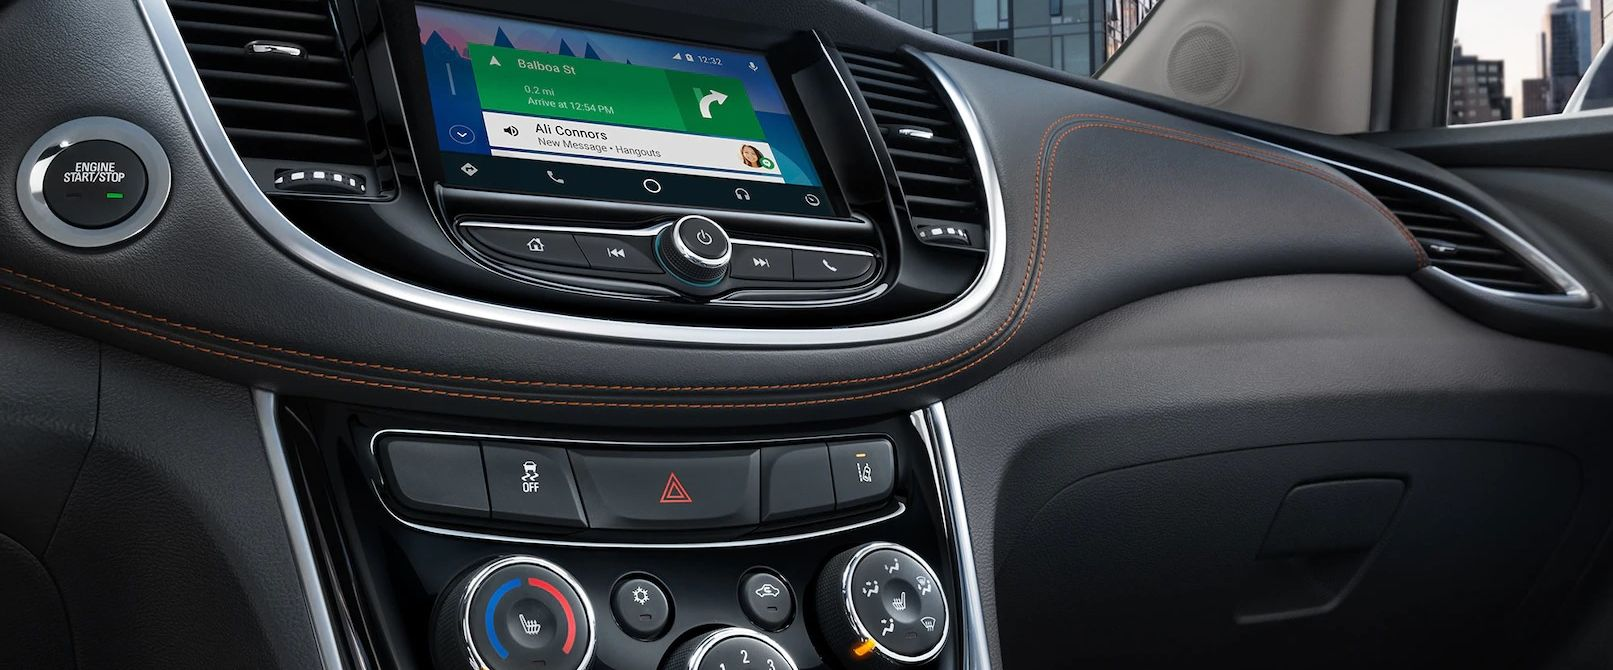 Extensive Interior Features in the Trax